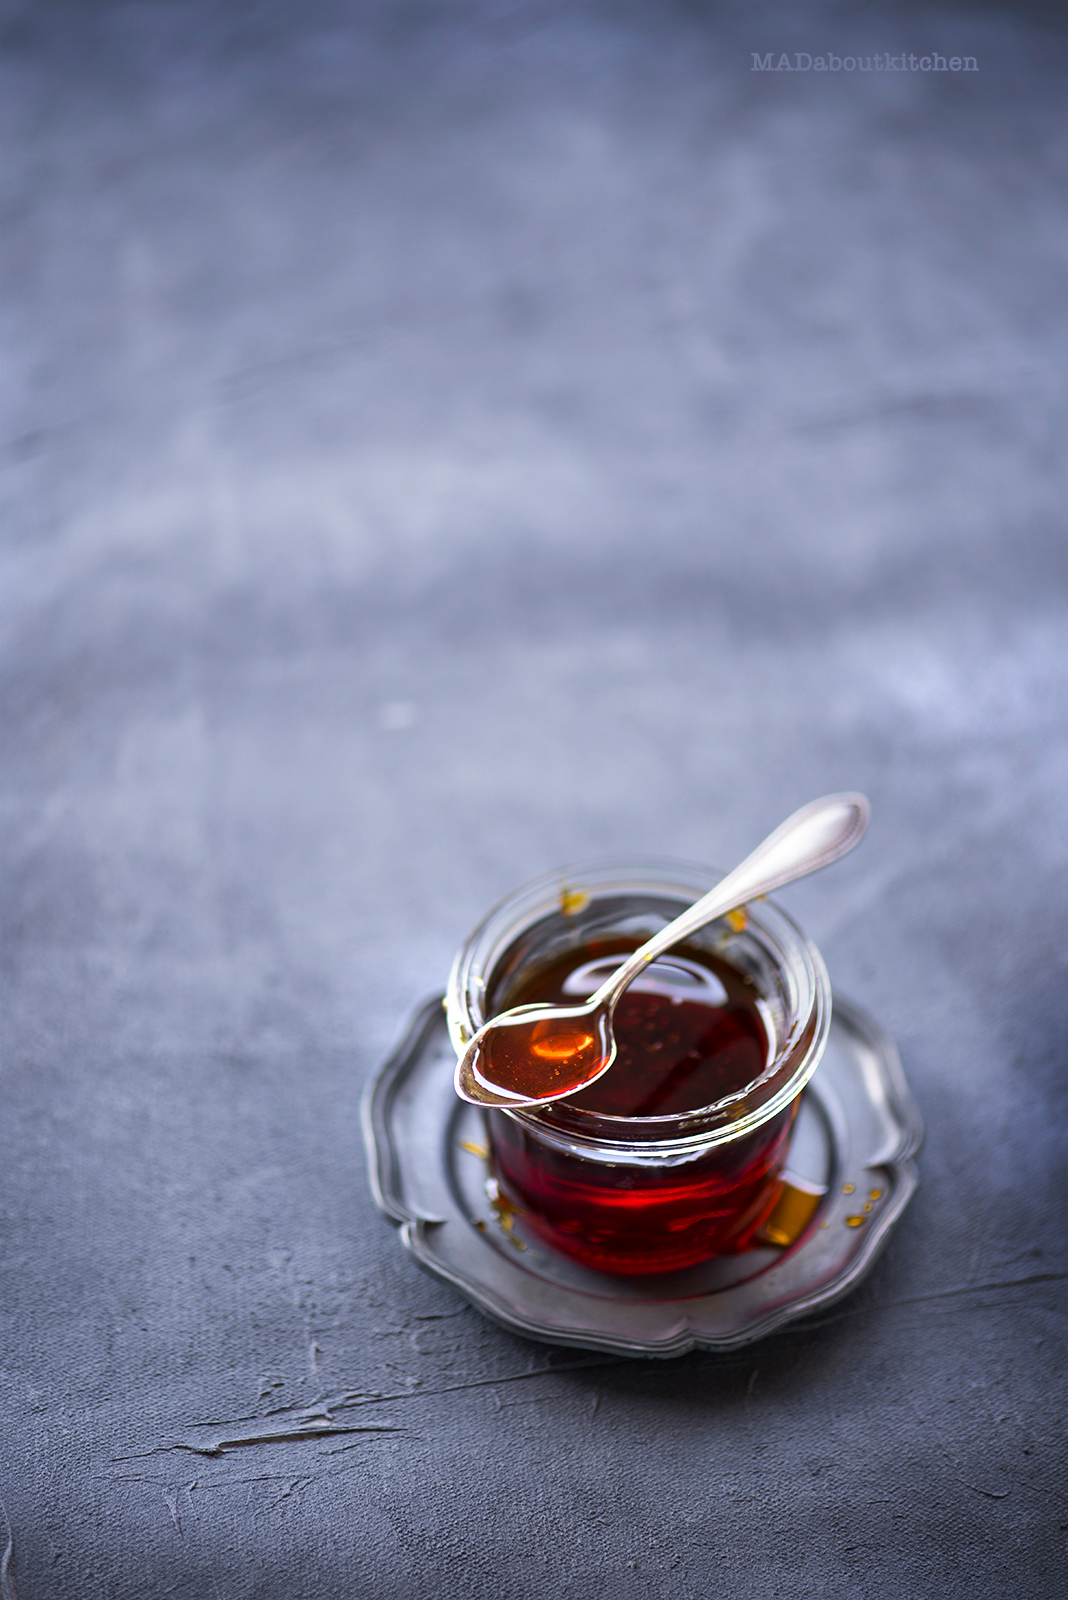 Caramel Syrup, is made by caramelising sugar. Caramel Syrup resembles Honey or Maple Syrup and is a basic syrup that is vastly used in desserts.